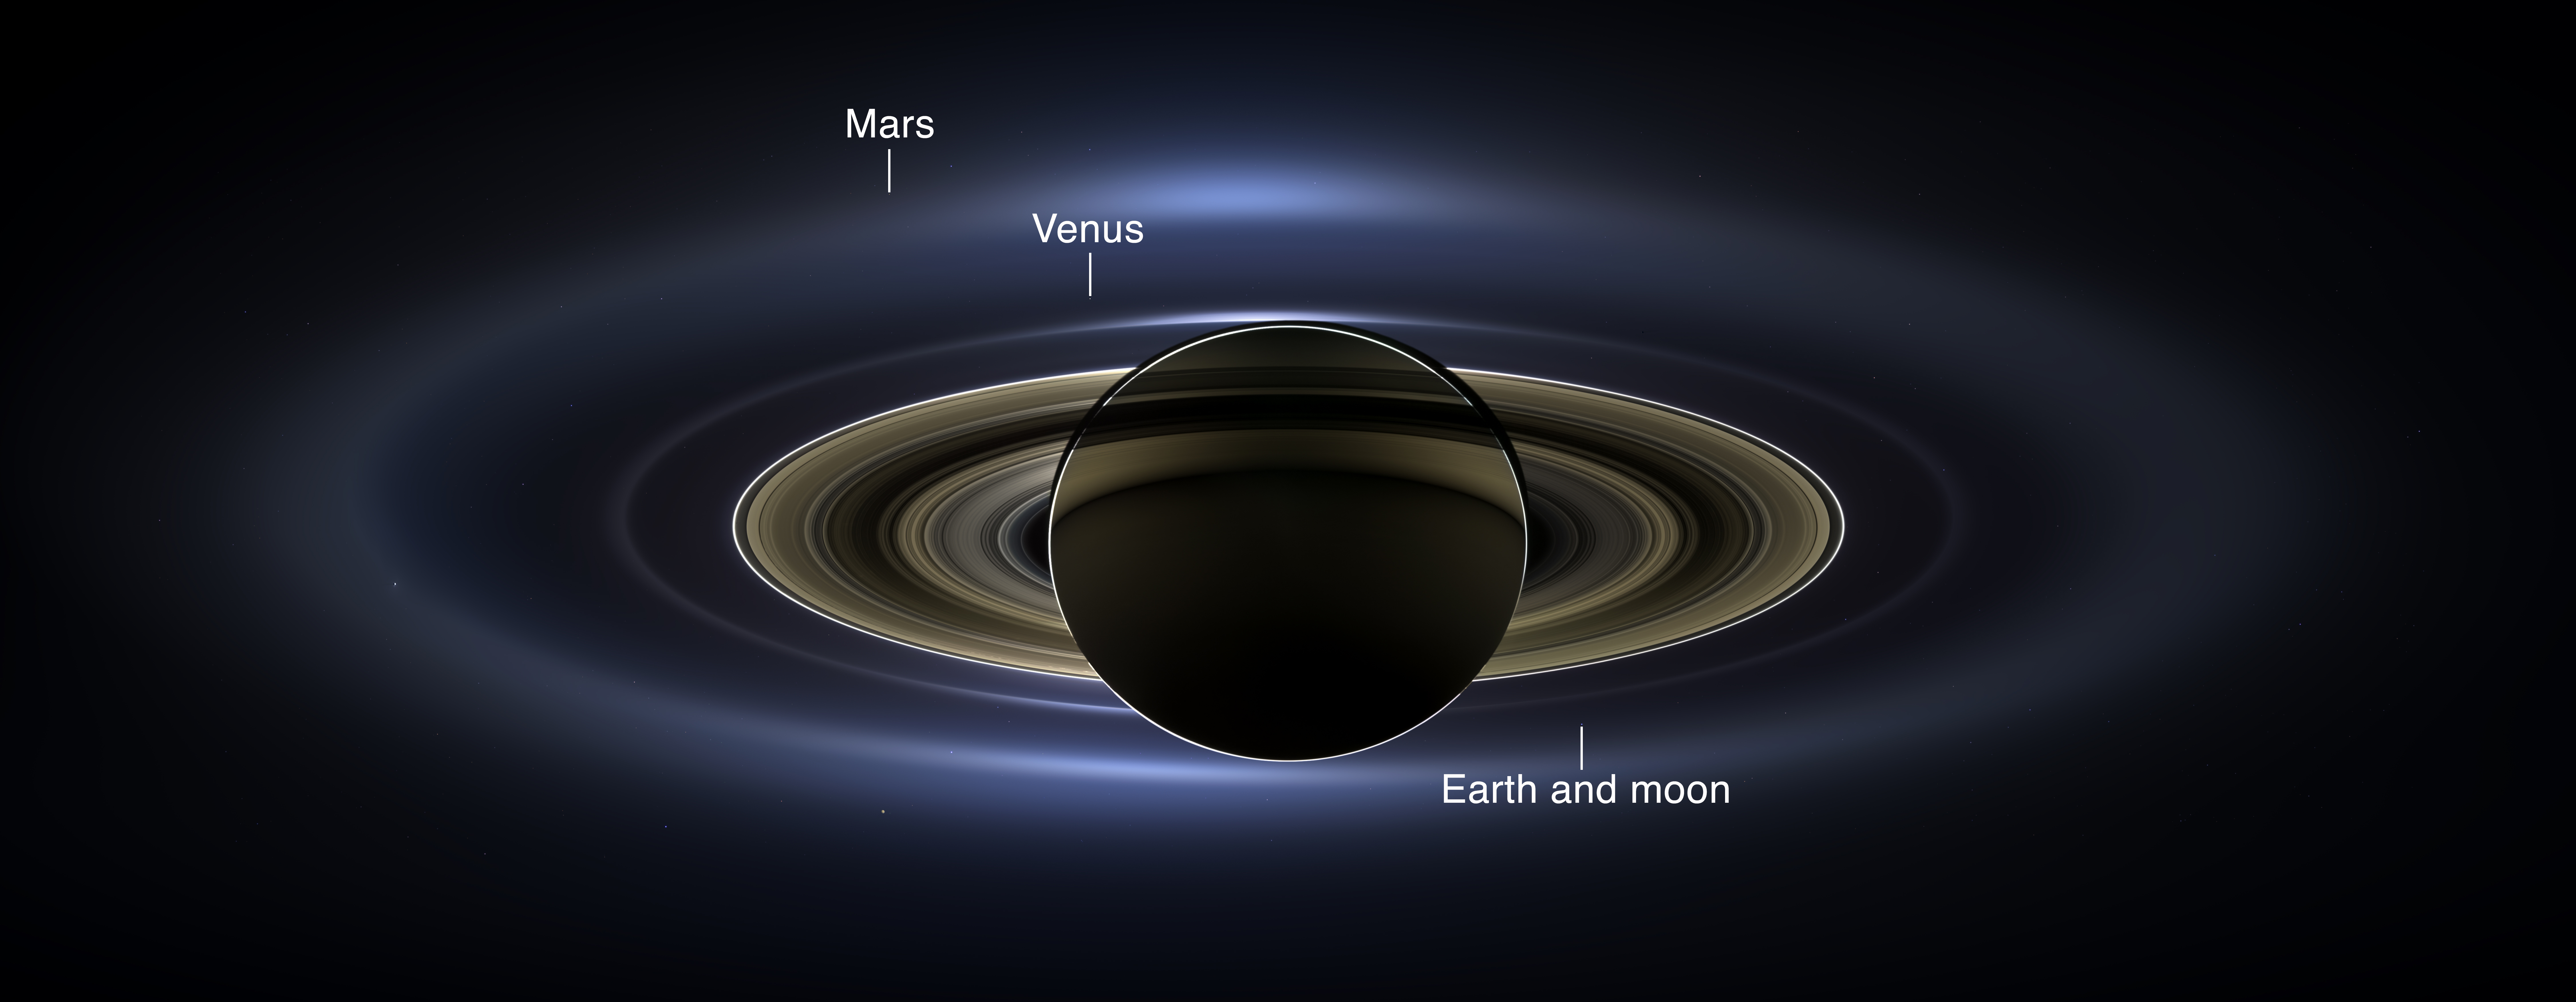 Beautiful backlit view of Saturn with Earth, Moon, Mars and Venus labeled in the background.